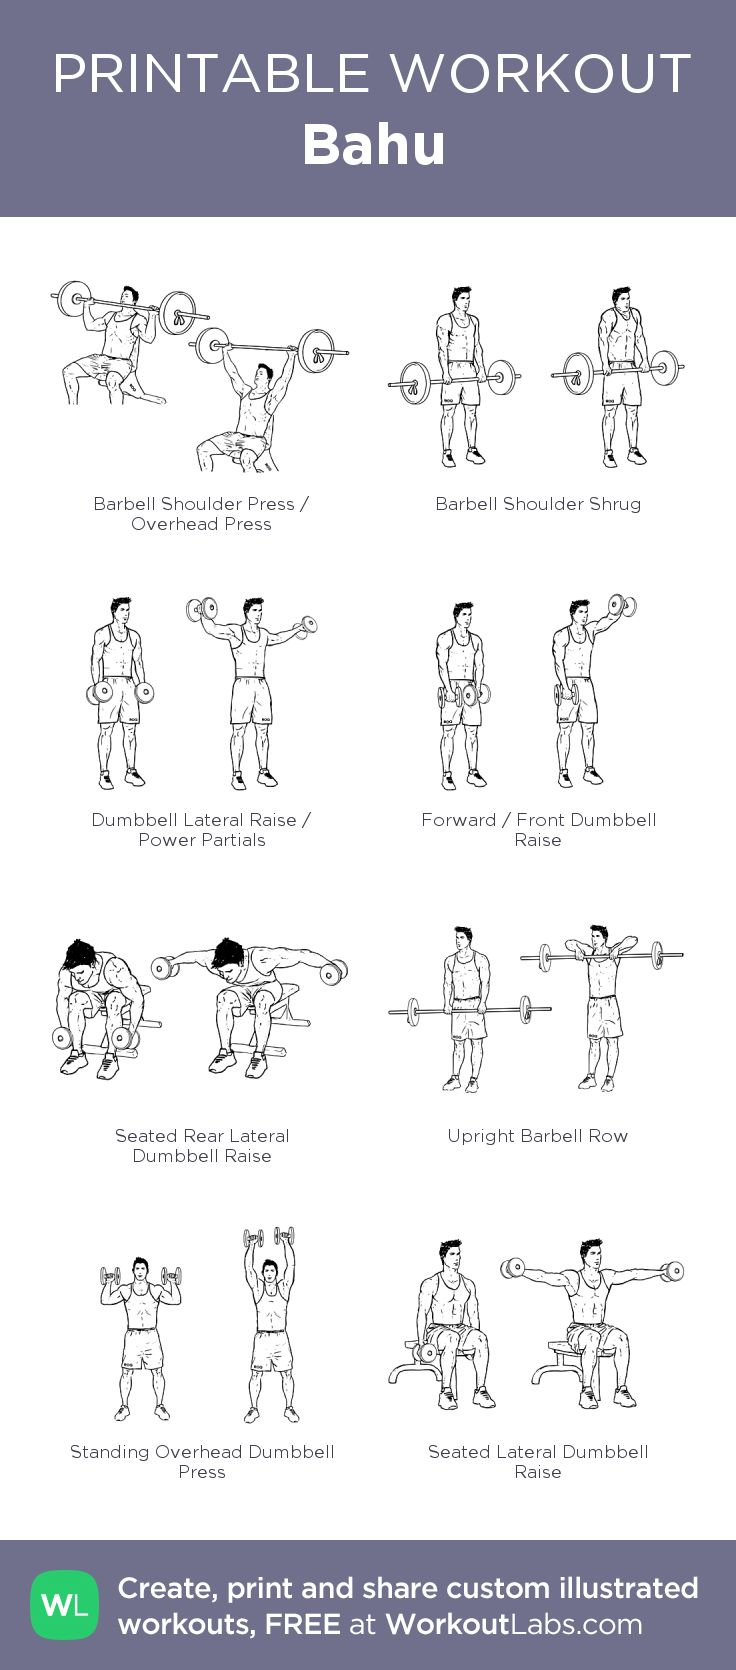 Bahu –my custom workout created at WorkoutLabs.com • Click through to download as printable PDF! #customworkout